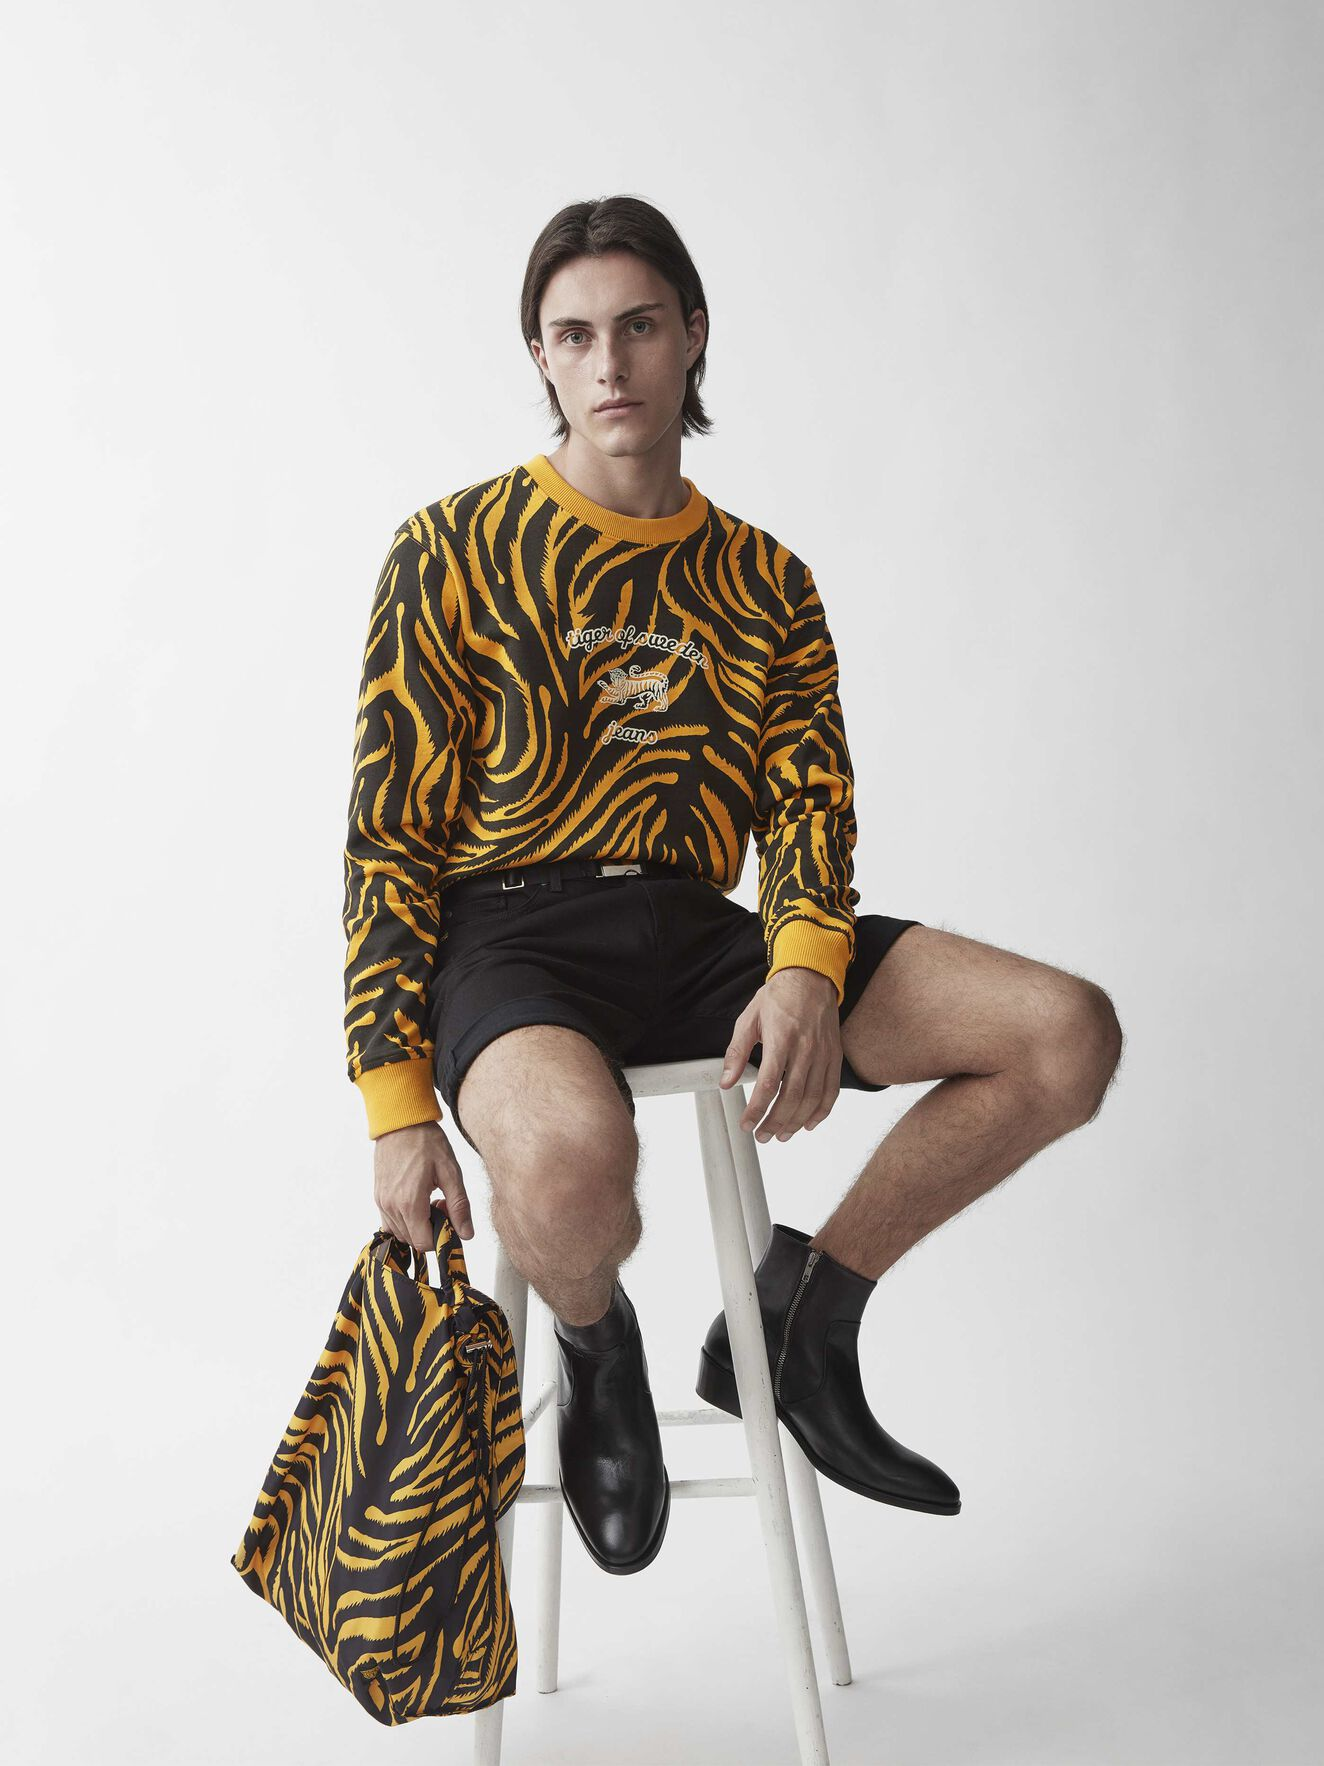 Tana T Sweatshirt in Print from Tiger of Sweden